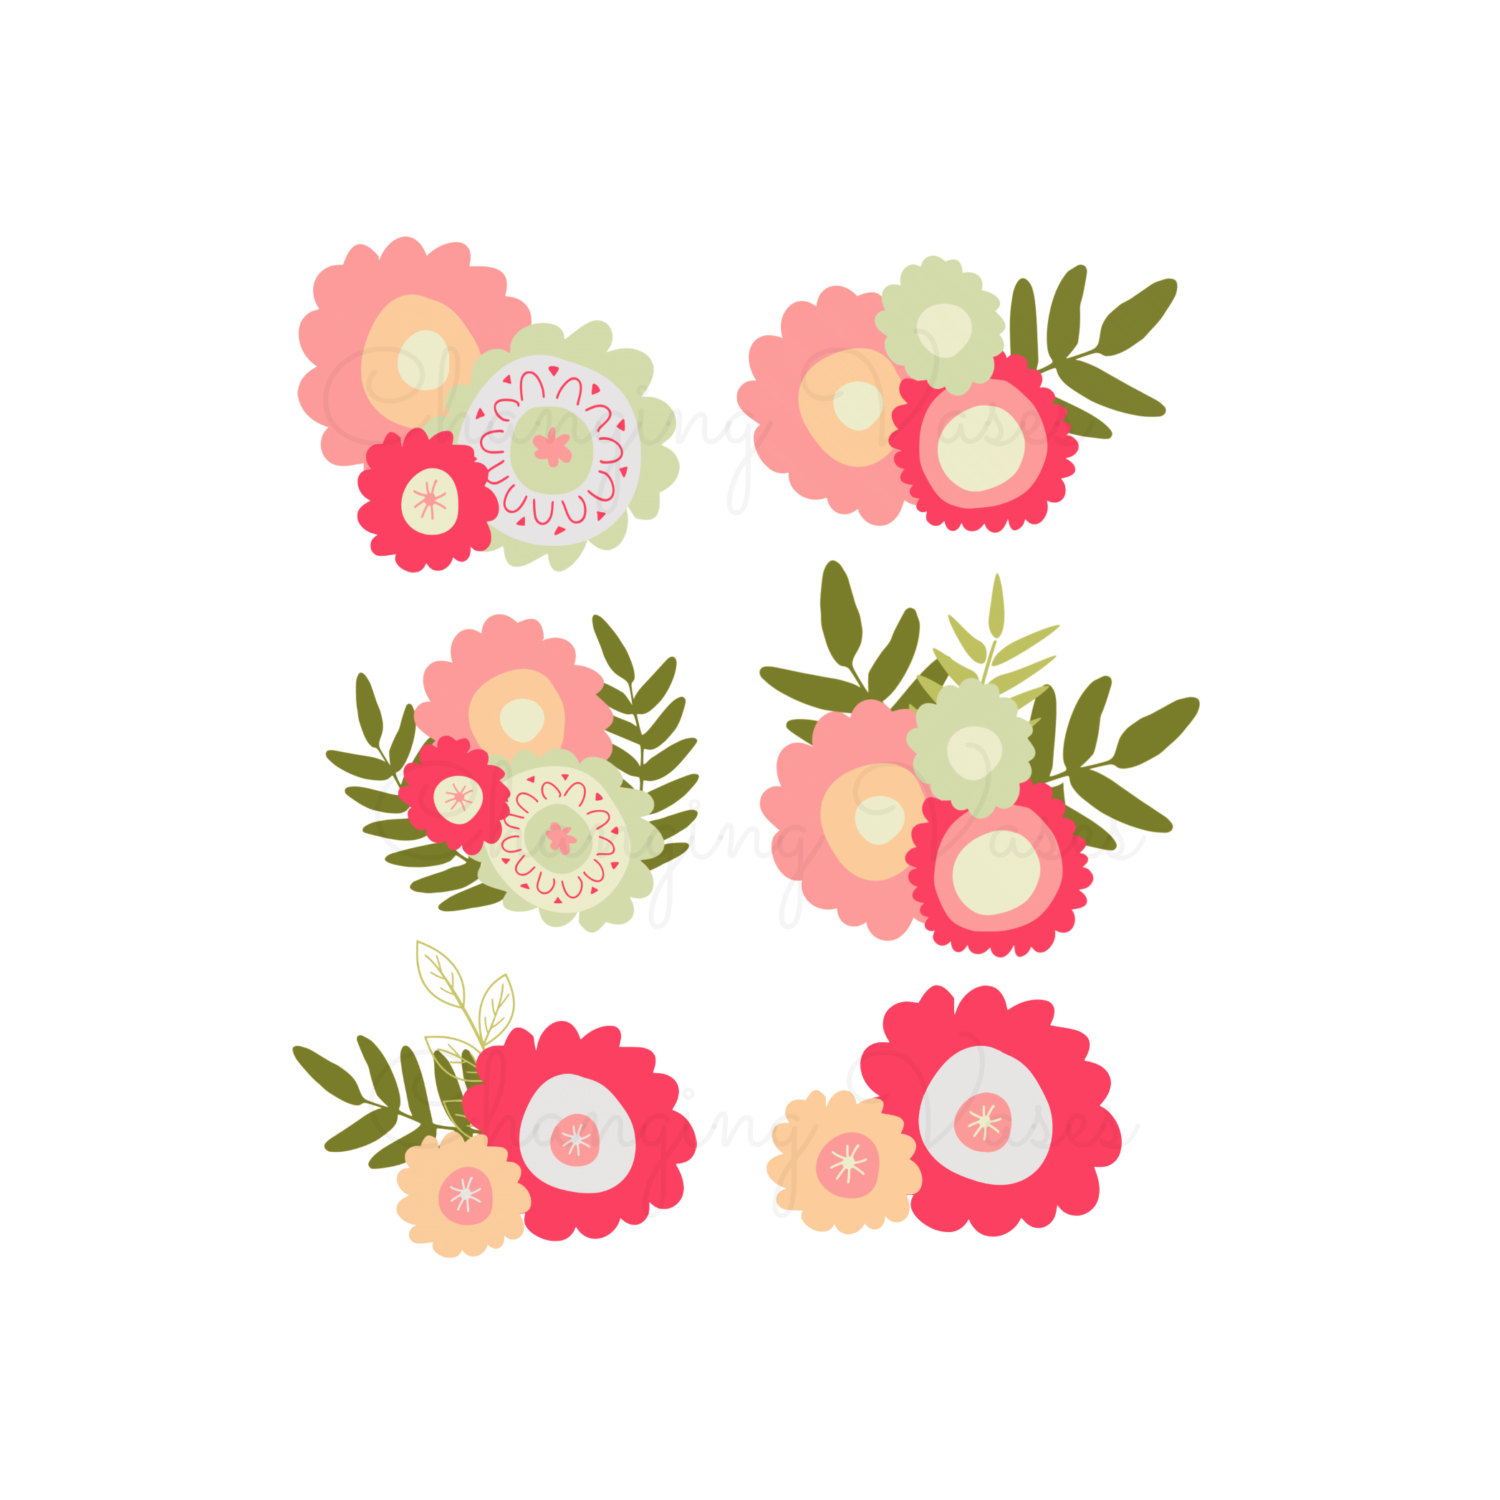 Peach Flower clipart peach blossom Kid peach flower flower Floral